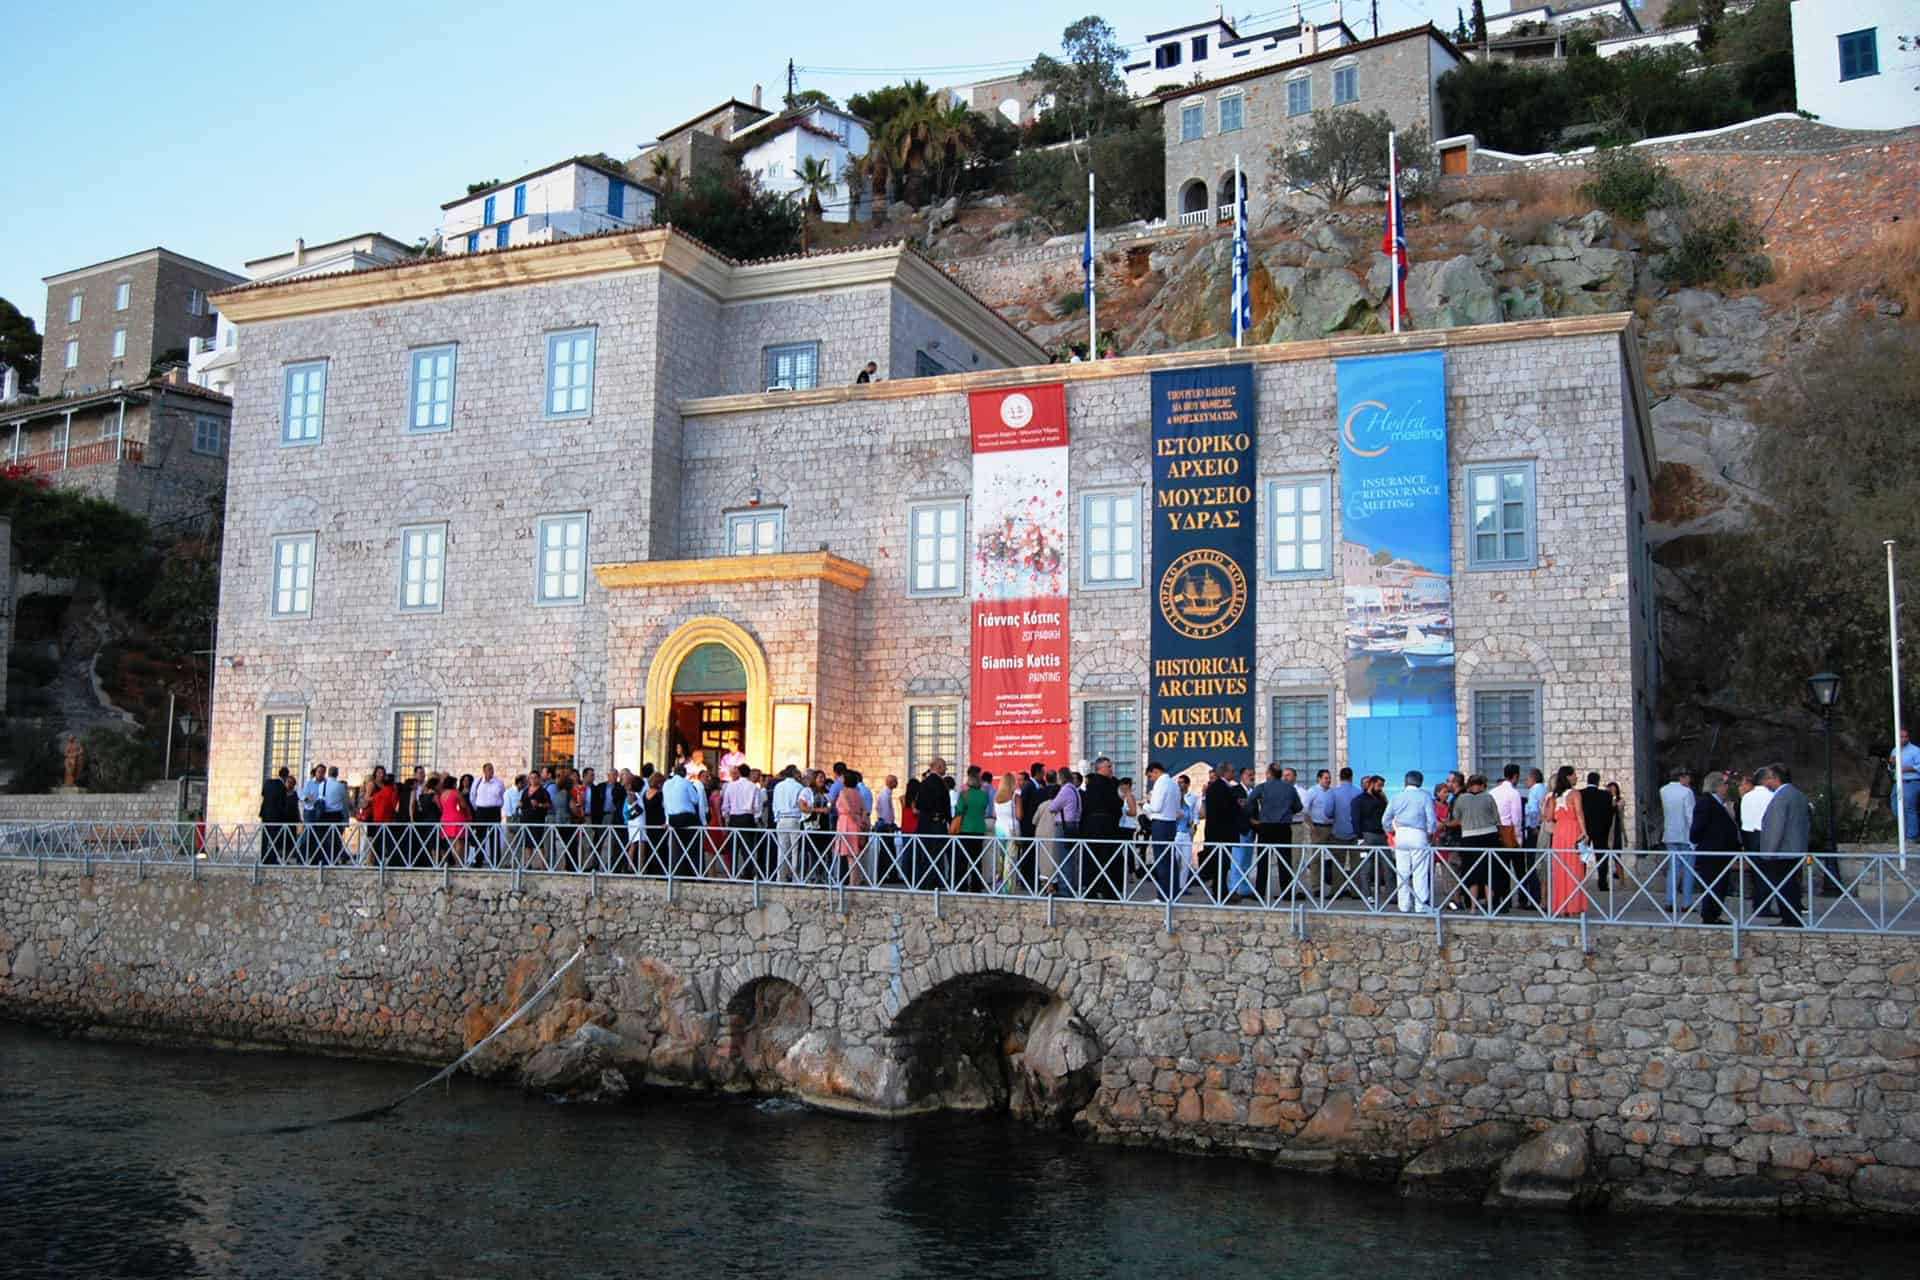 Historical Archives - Museum of Hydra